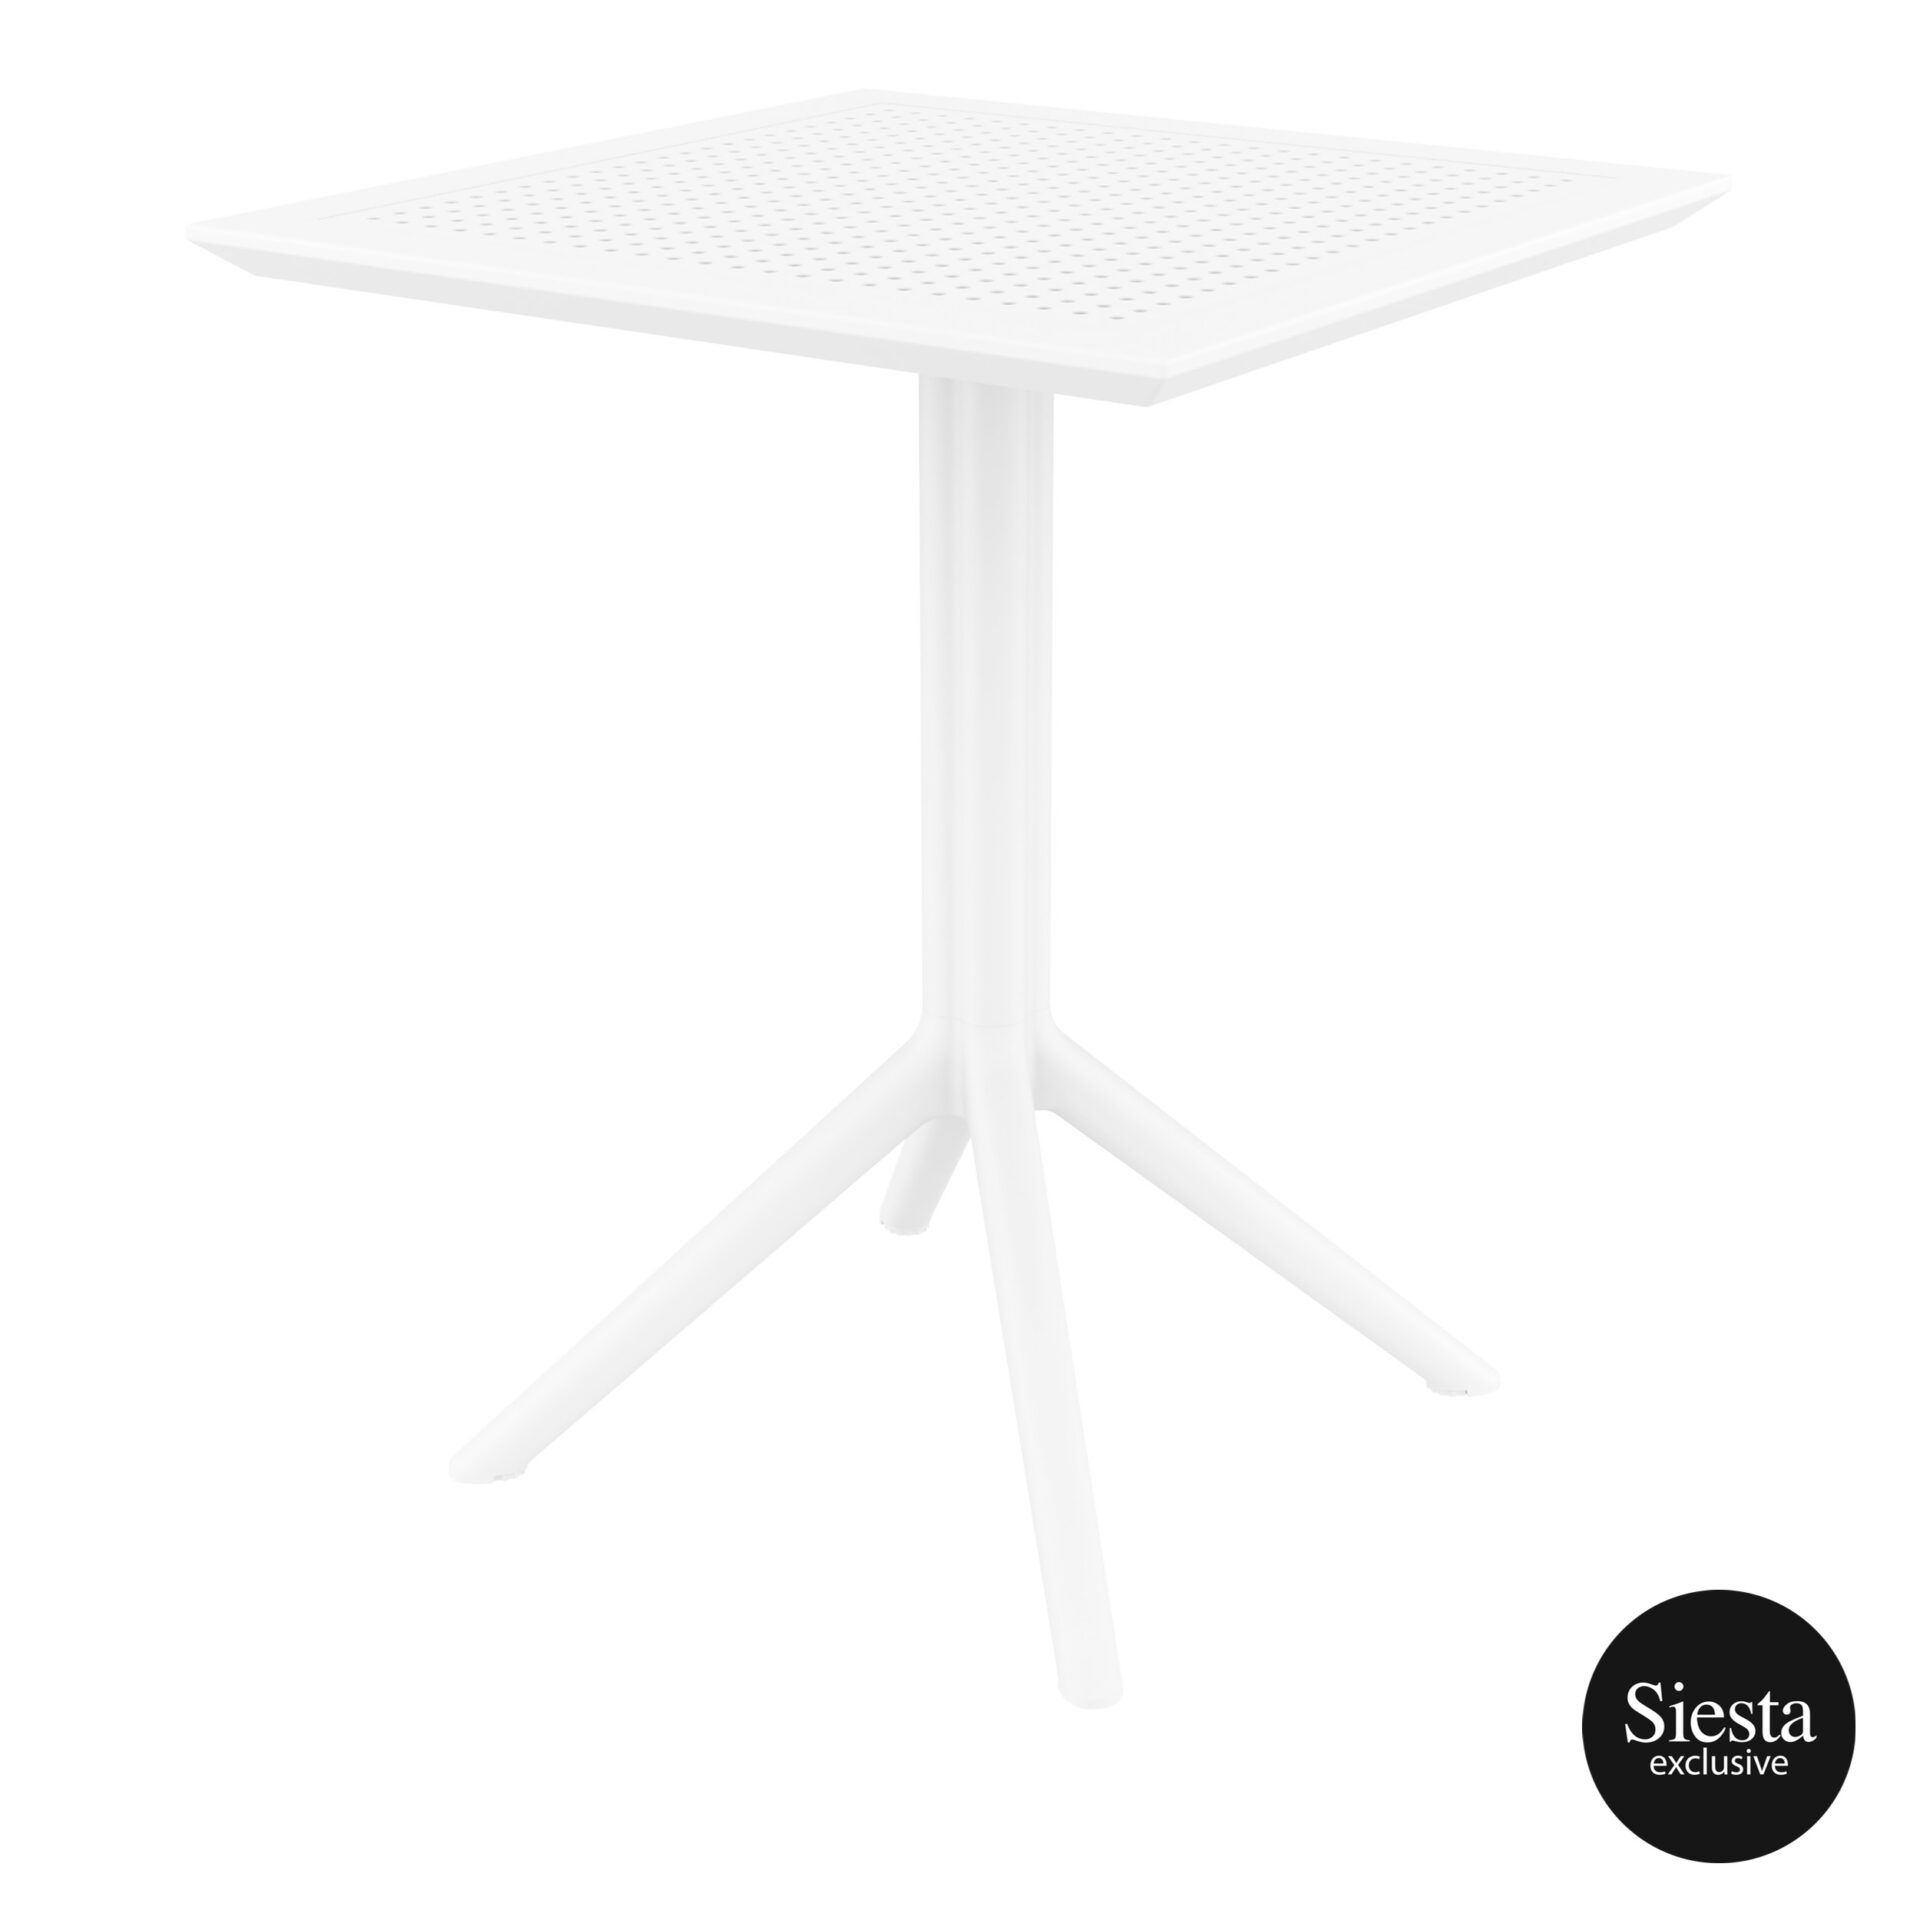 polypropylene outdoor sky folding table 60 white front side